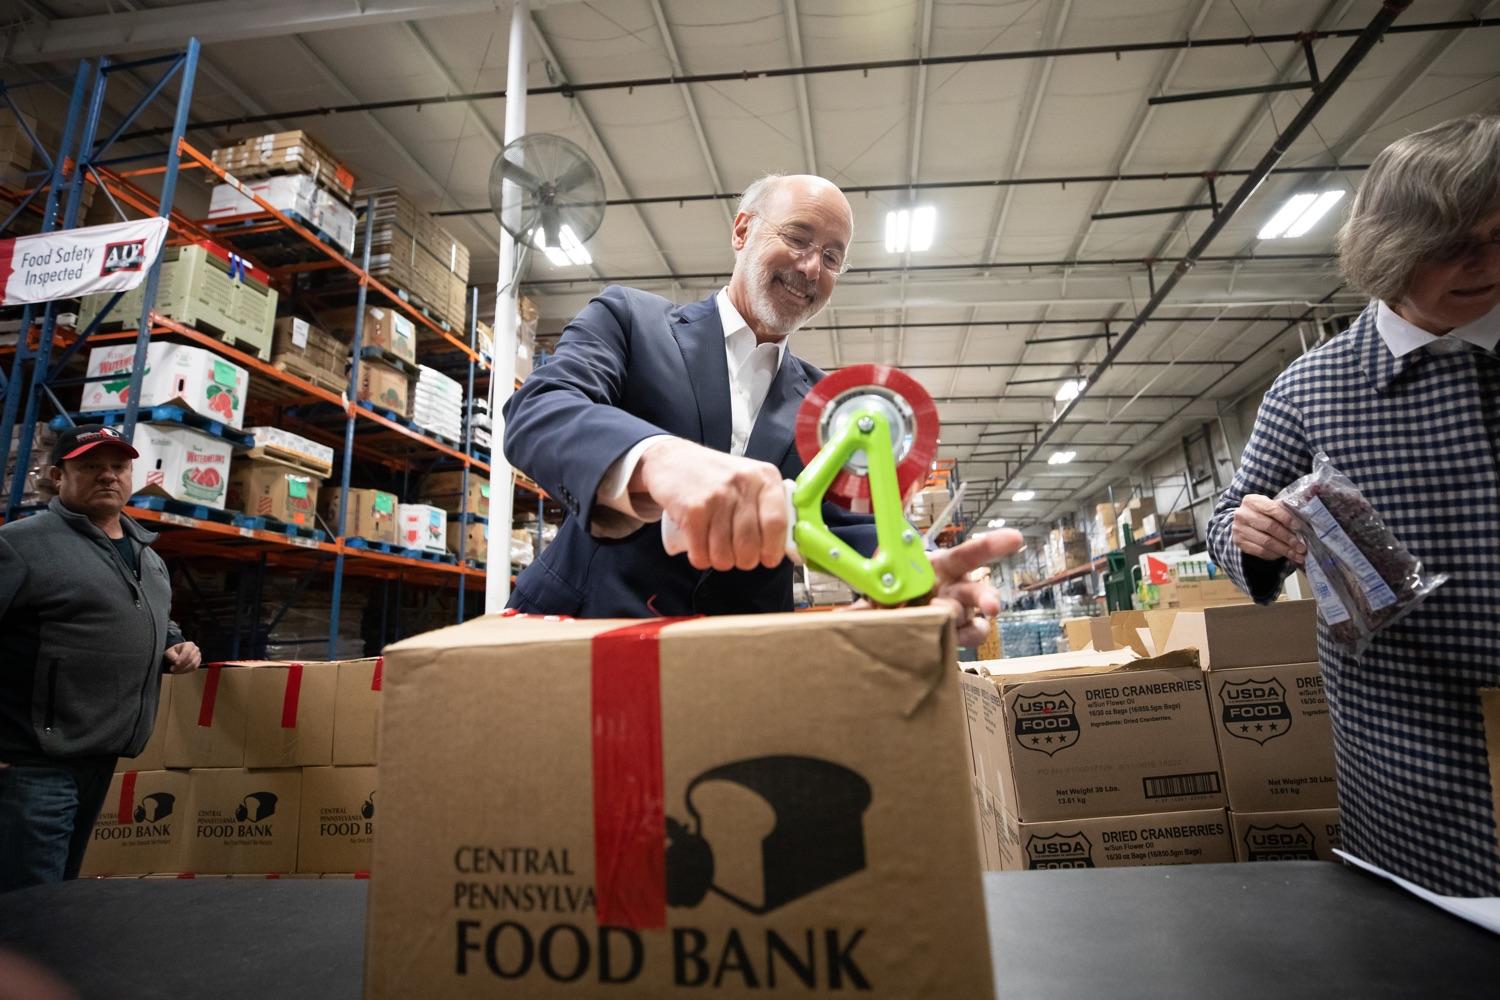 "<a href=""https://filesource.wostreaming.net/commonwealthofpa/photo/17632_gov_foodbank_volunteering_dz_013.jpg"" target=""_blank"">⇣ Download Photo<br></a>Governor Tom Wolf loading boxes of food at the Central Pennsylvania Food Bank.  The governor and first lady visit the Central Pennsylvania Food Bank in Harrisburg to participate in a volunteer project, packing boxes of food for veterans and their families. Ahead of Thanksgiving and the holiday season, Governor Tom Wolf and First Lady Frances Wolf are reminding Pennsylvanians of the importance of helping each other. Harrisburg, PA  Tuesday November 26, 2019"